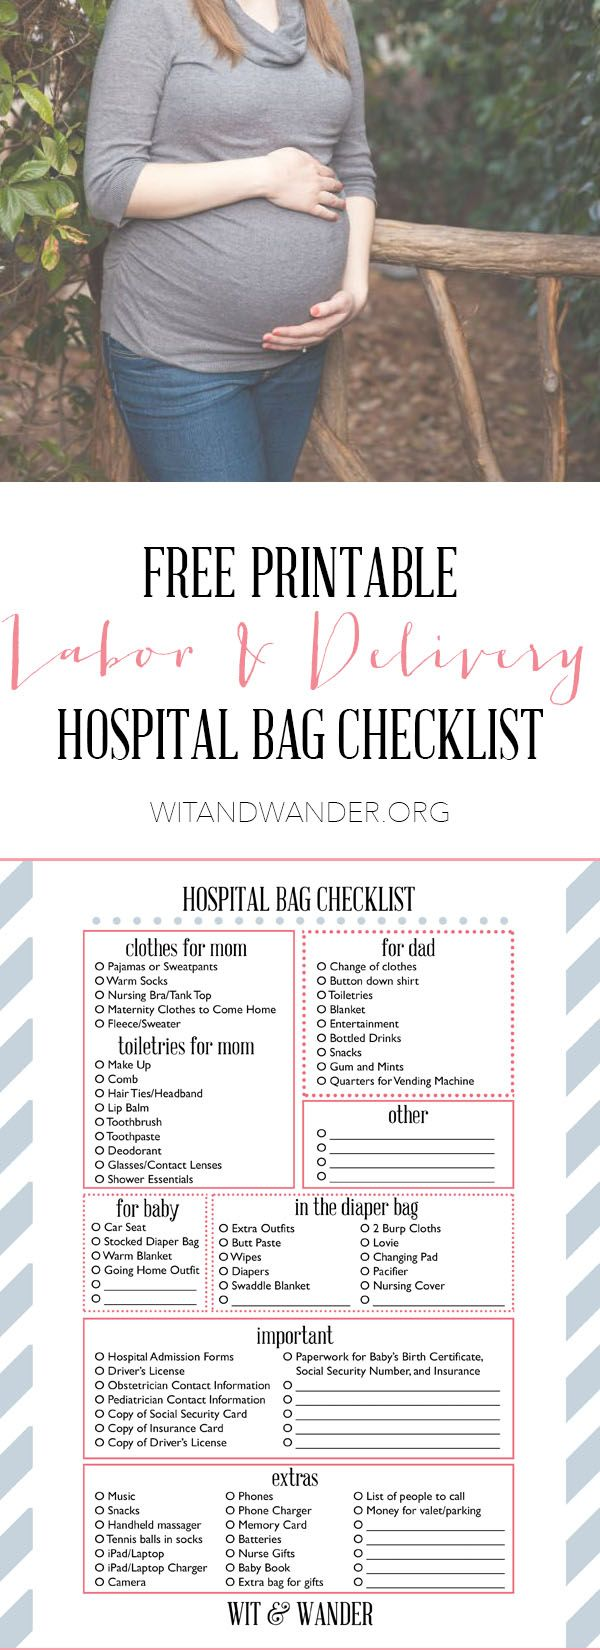 What should I pack for labor? Here is a FREE Printable Hospital Bag Packing List Checklist + 10 things NO ONE tells you to pack in your maternity bag!